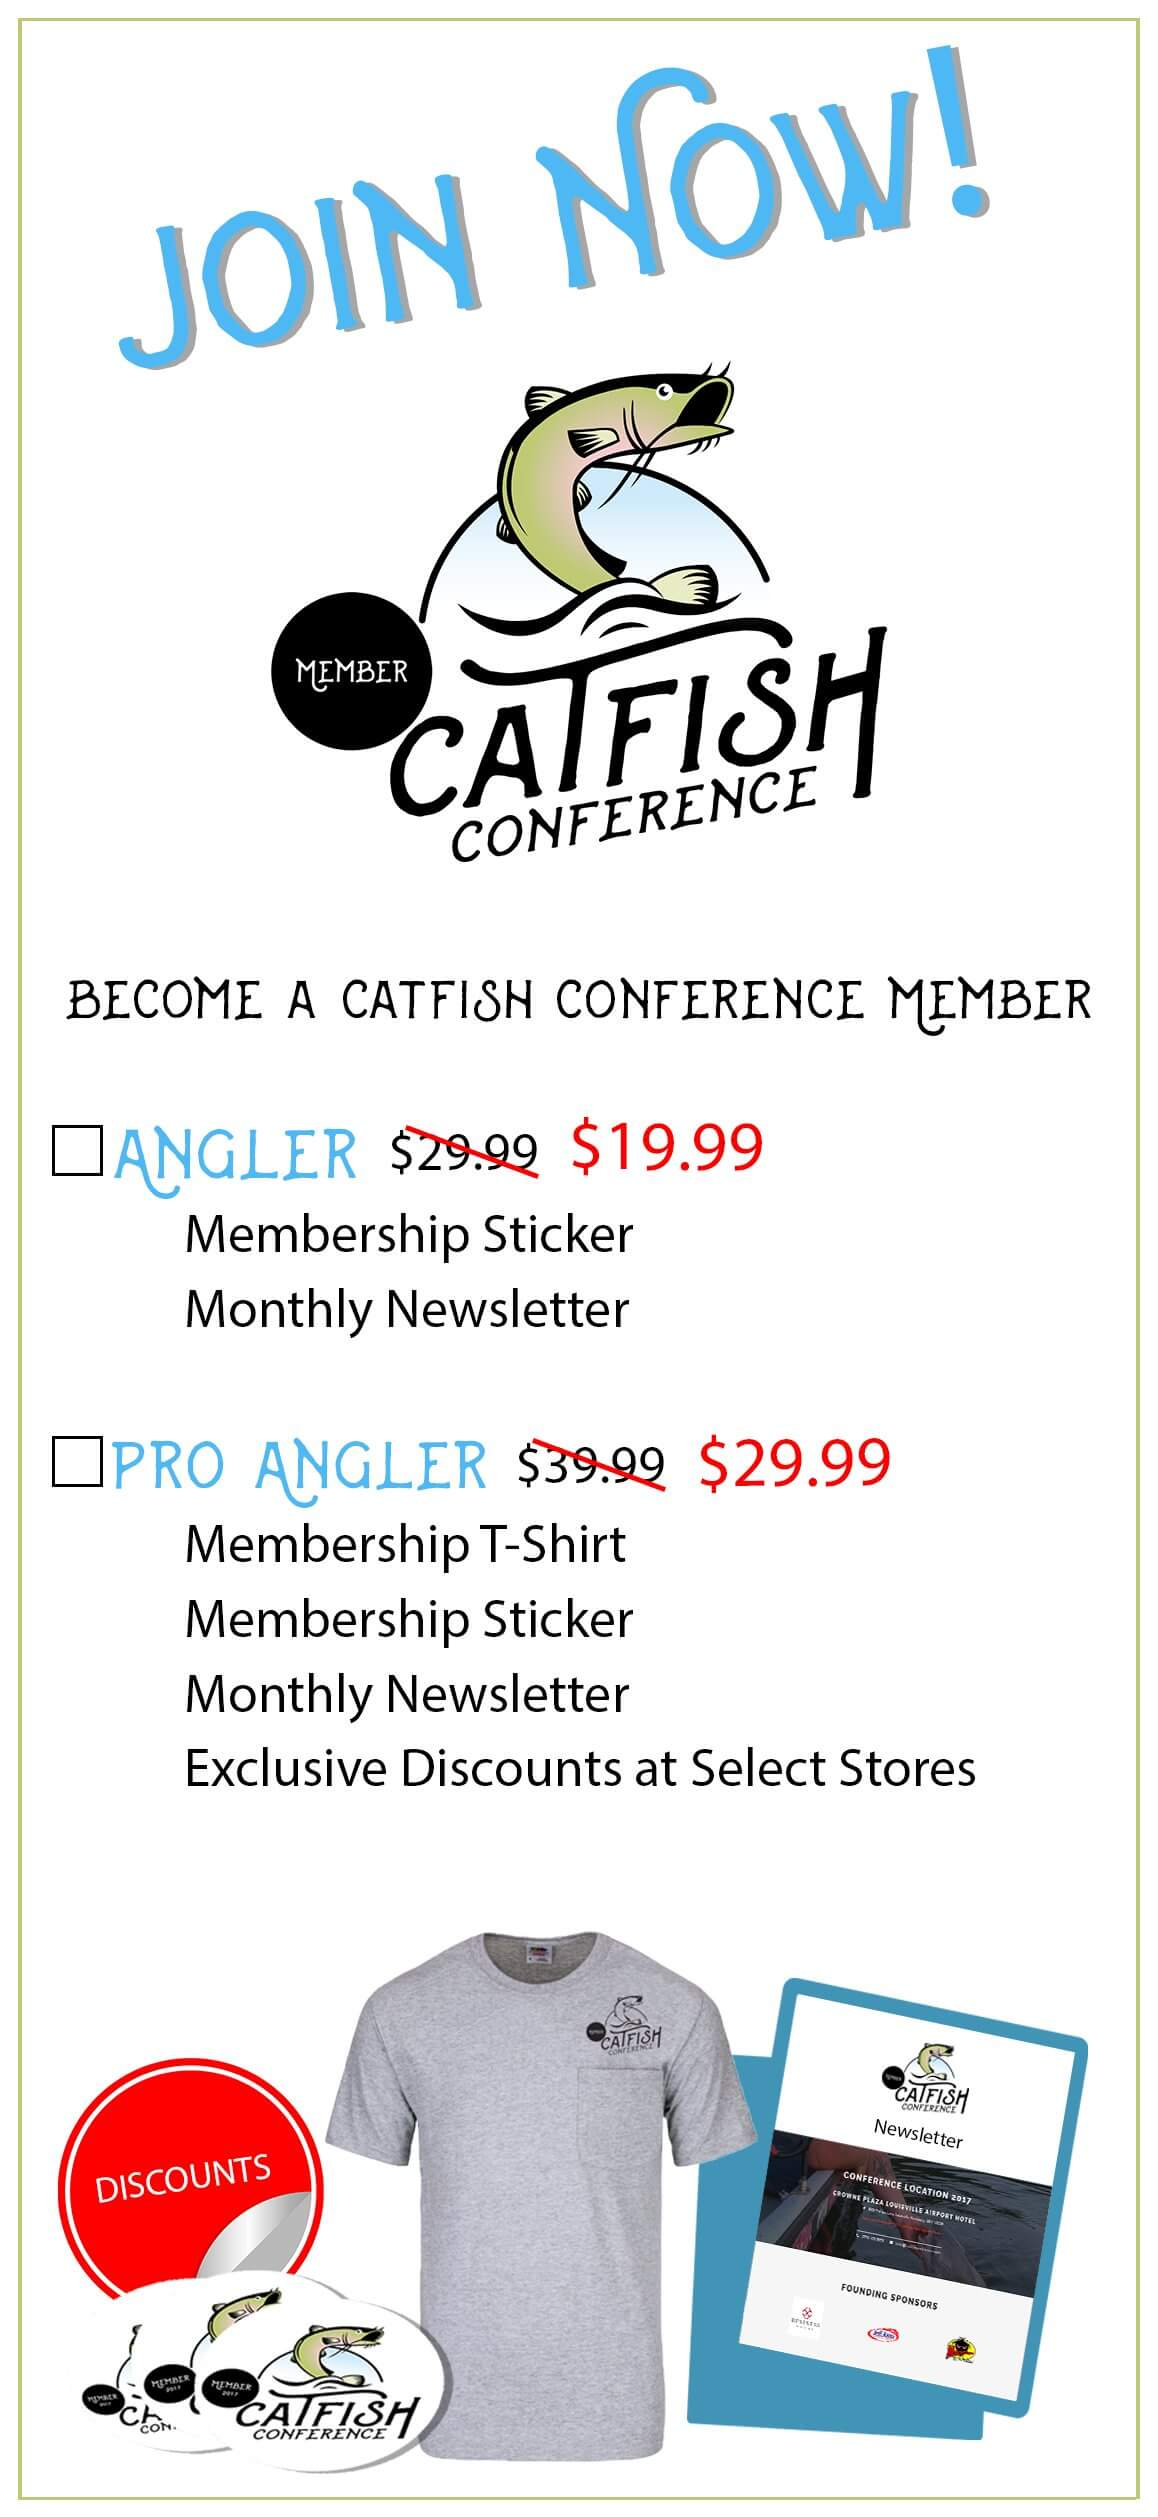 [object object] Catfish Conference Membership Catfish Membership Rack Card Front V 4